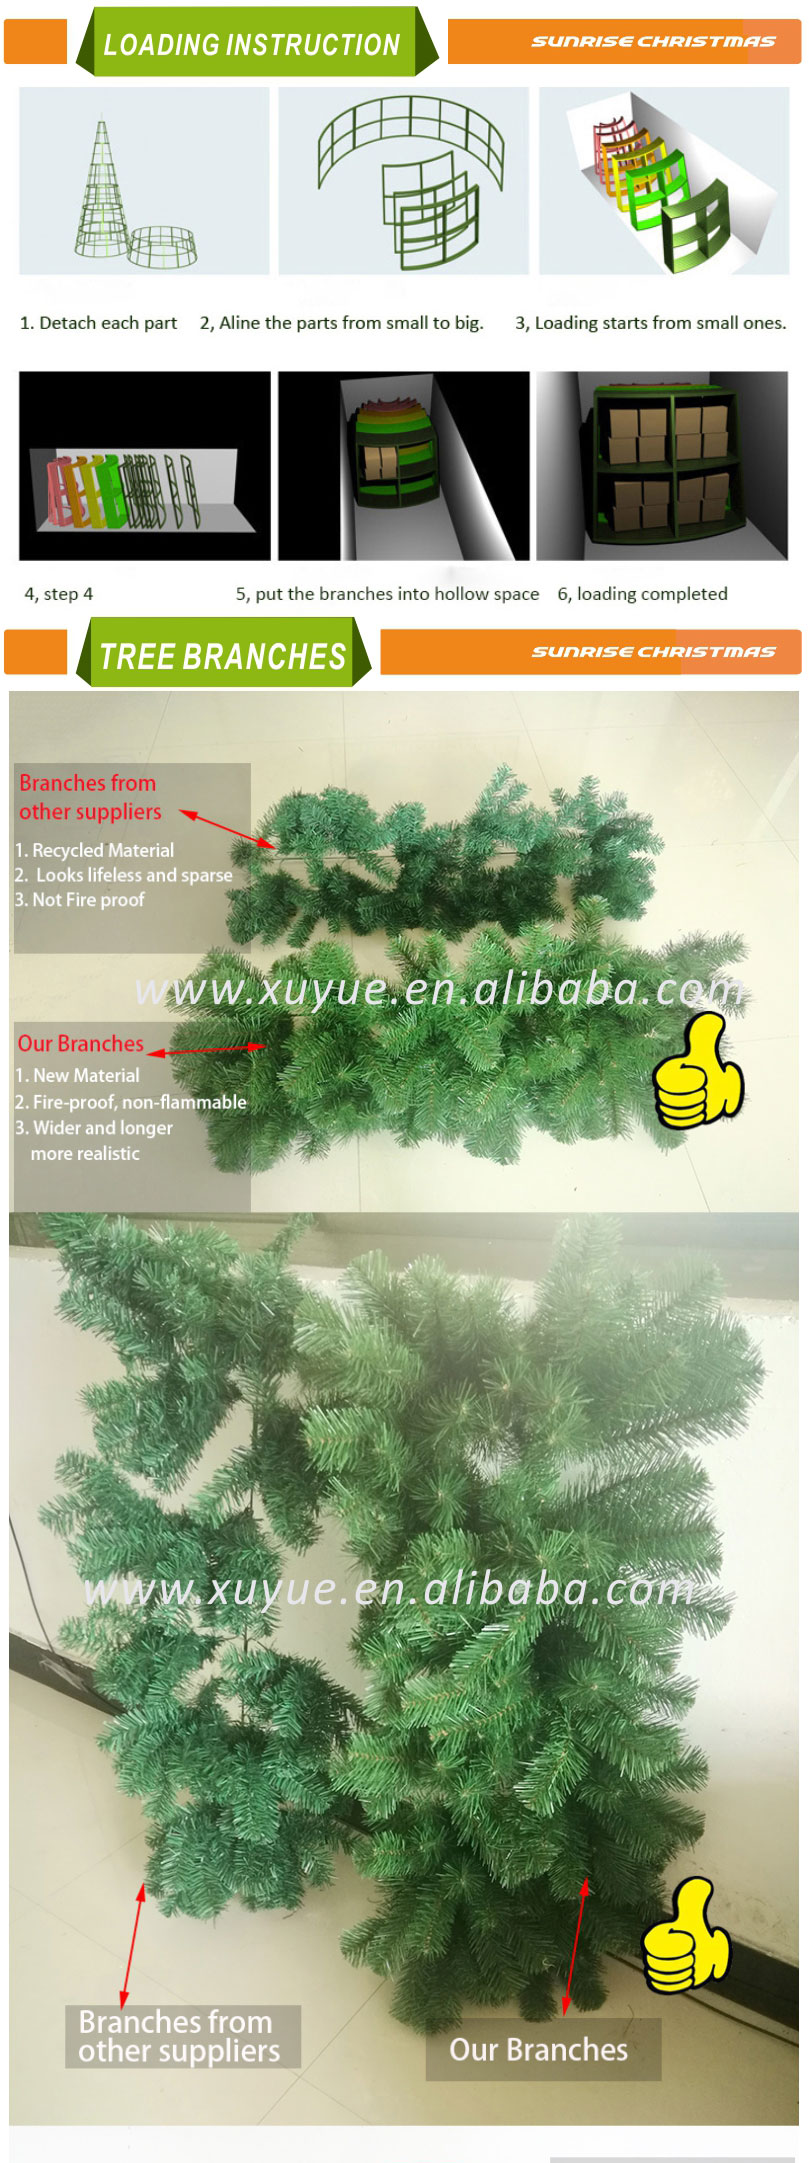 Christmas Tree Recycled Materials Big.6meter Metal Frame Artificial Giant Christmas Tree Ornament Decoration Large Xmas Tree View Artificial Giant Christmas Tree Sunrise Product Details